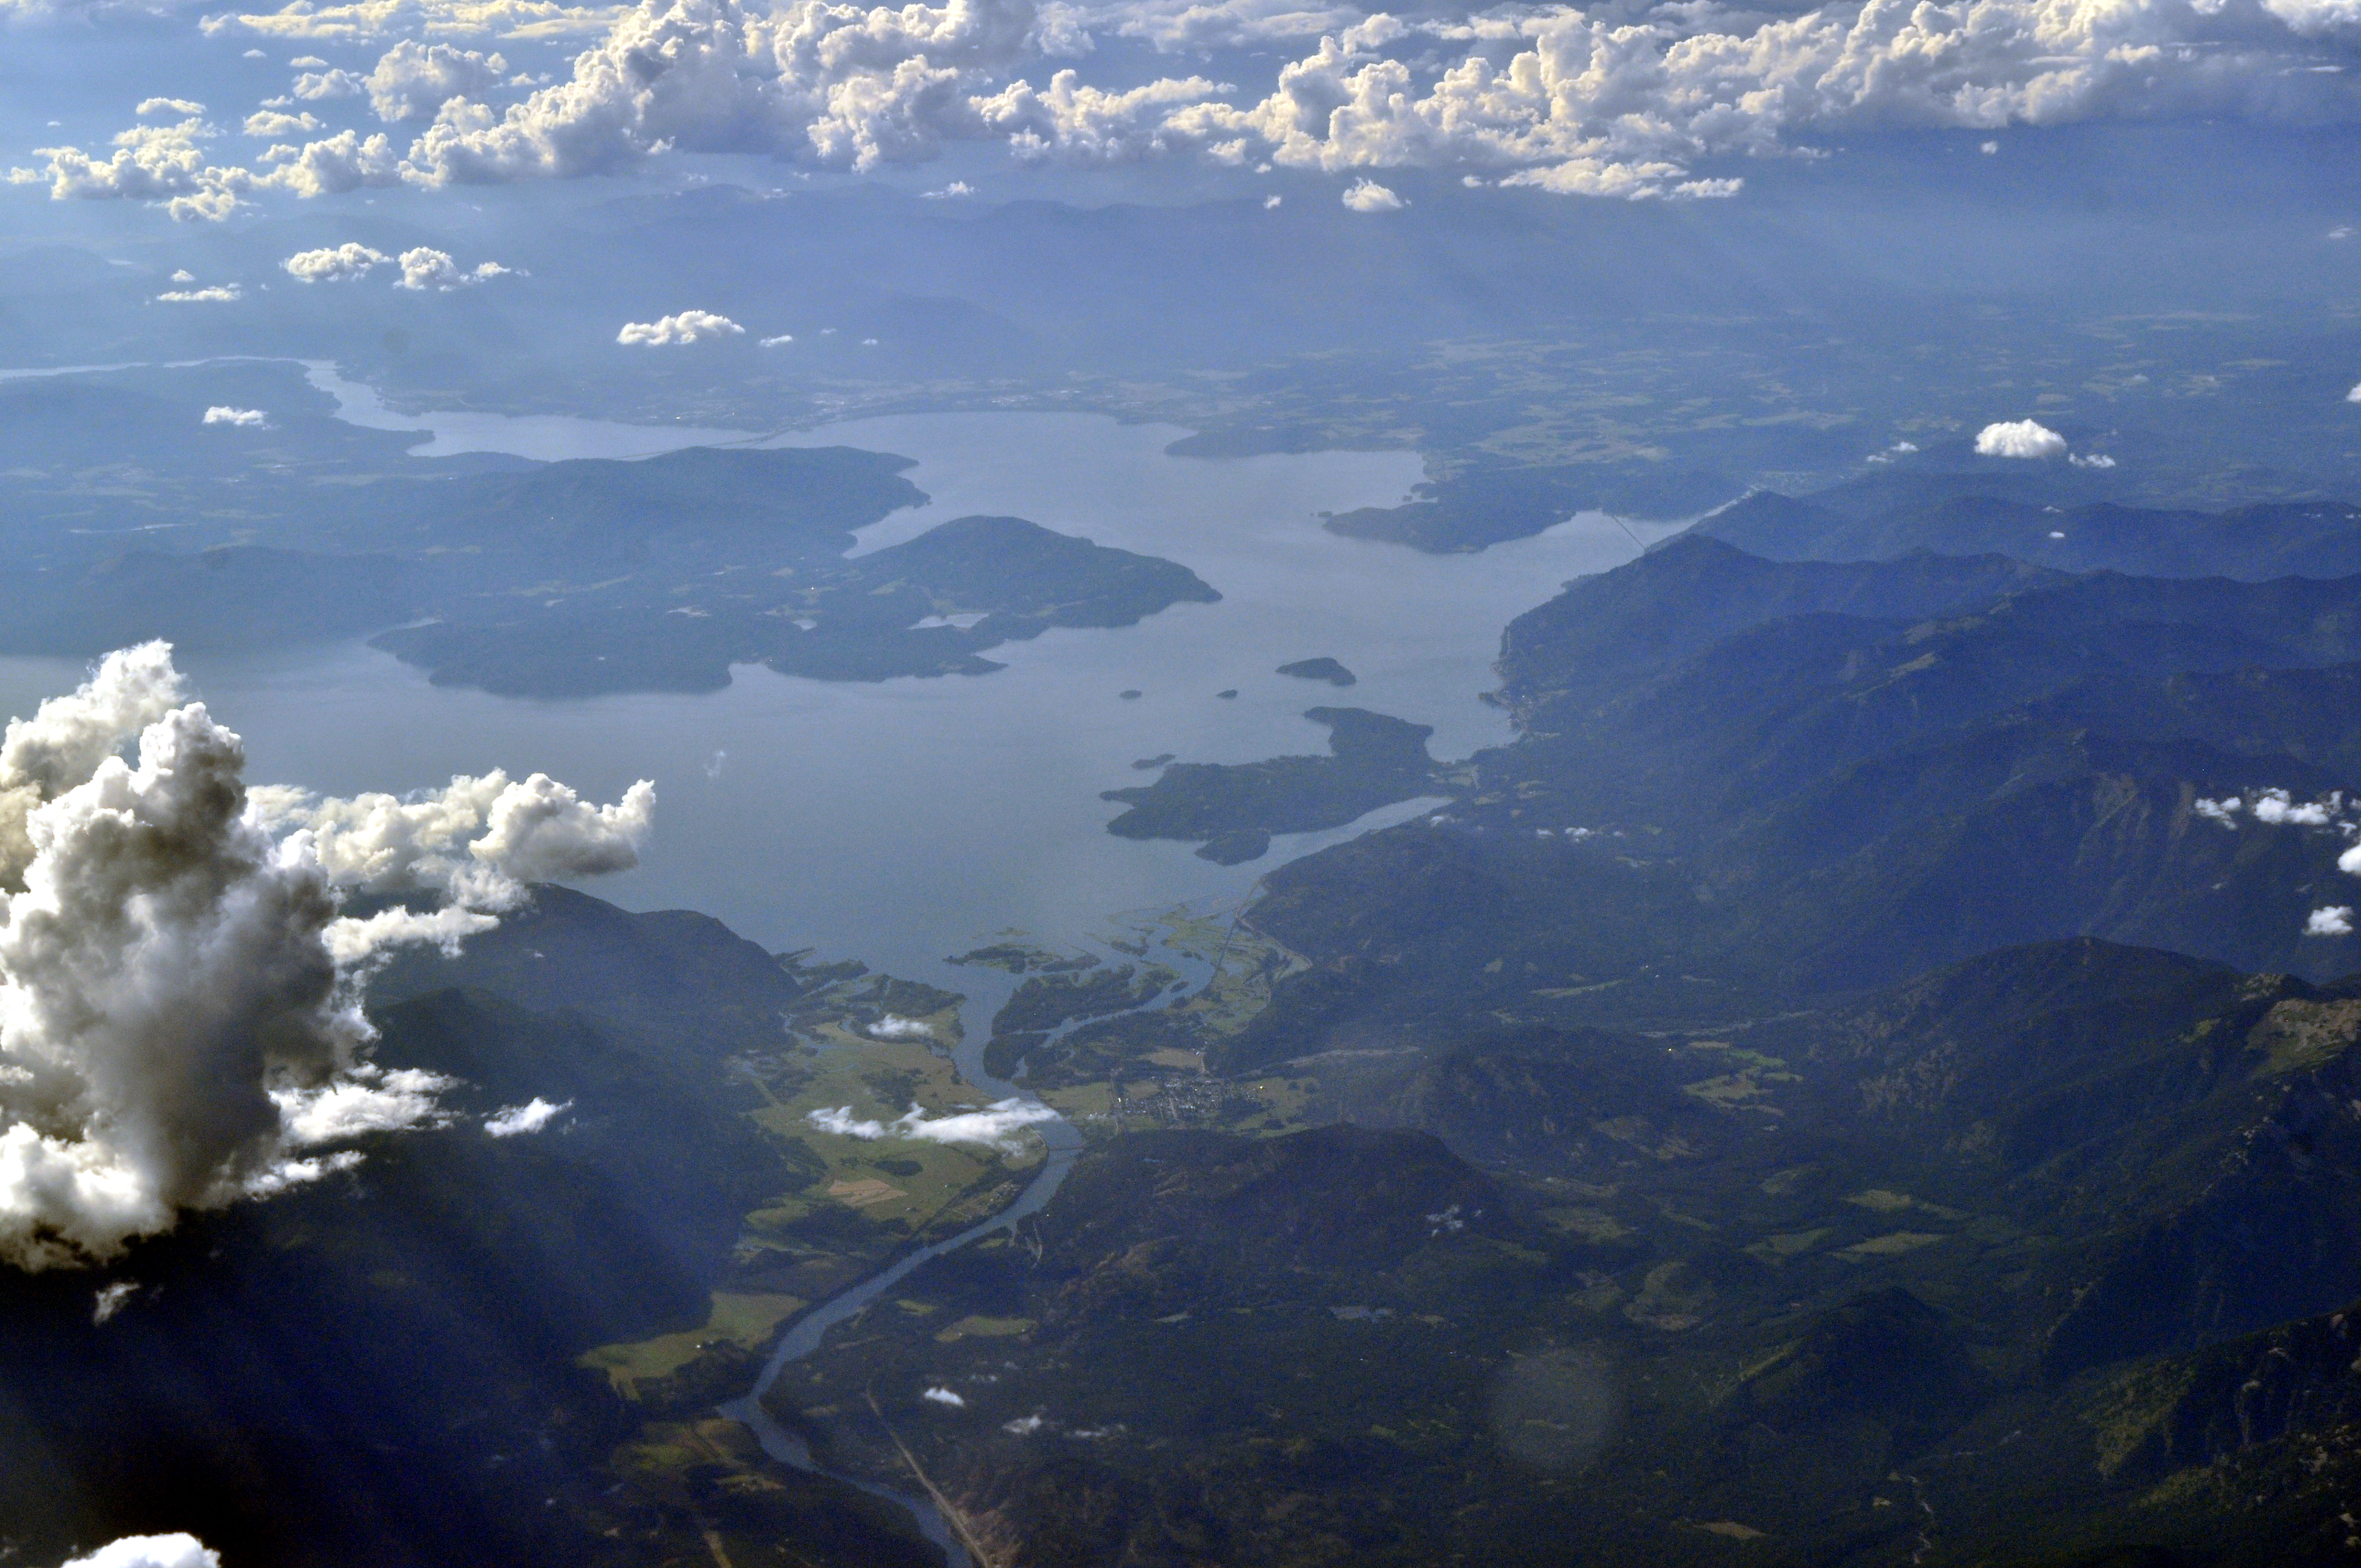 lake pend oreille�paddle to pearl island idaho conservation